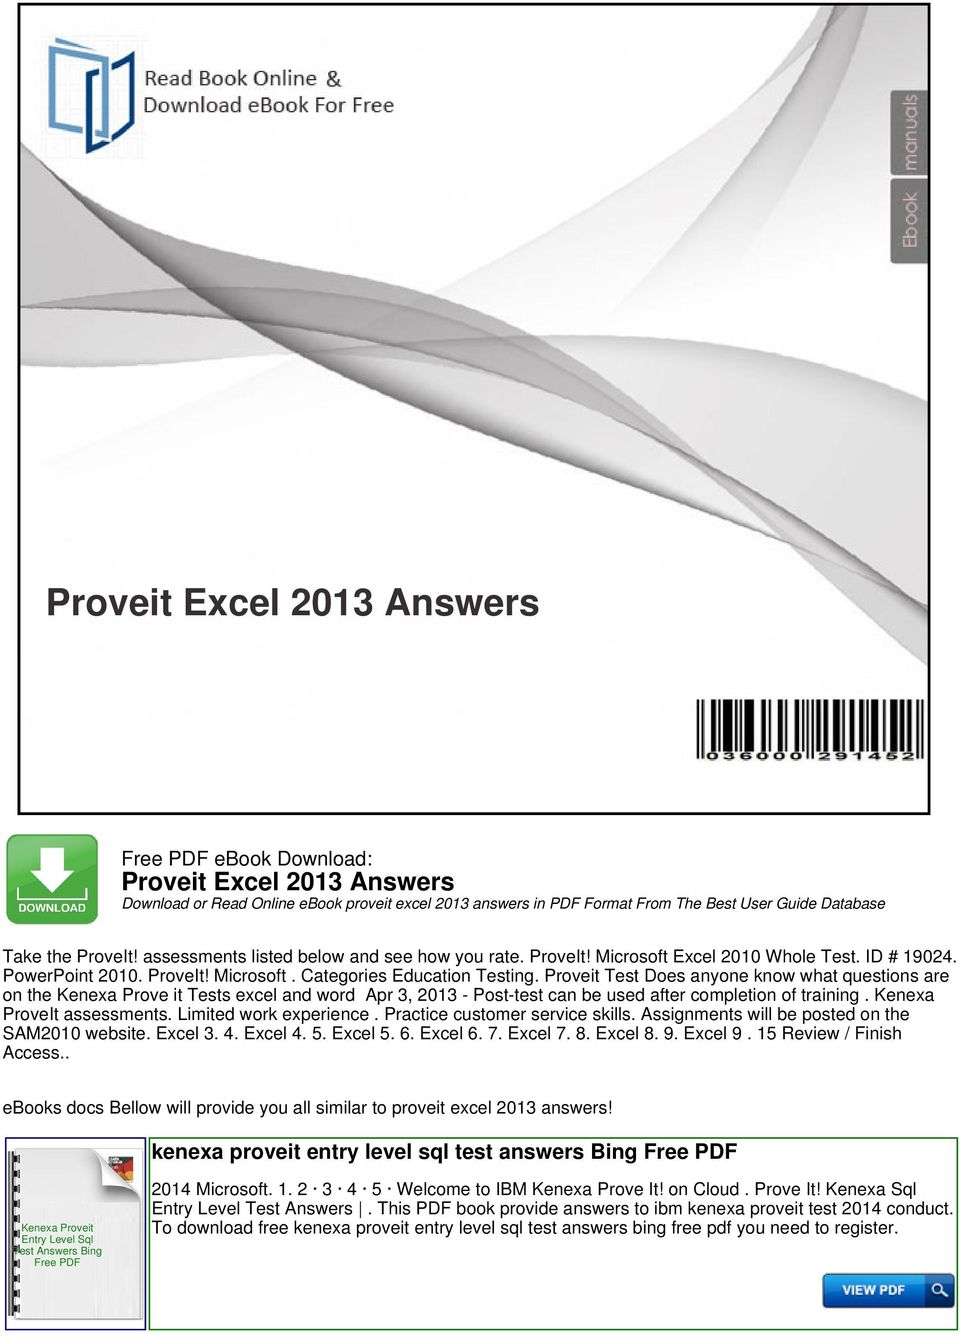 Proveit excel 2013 answers pdf proveit test does anyone know what questions are on the kenexa prove it tests excel and fandeluxe Image collections